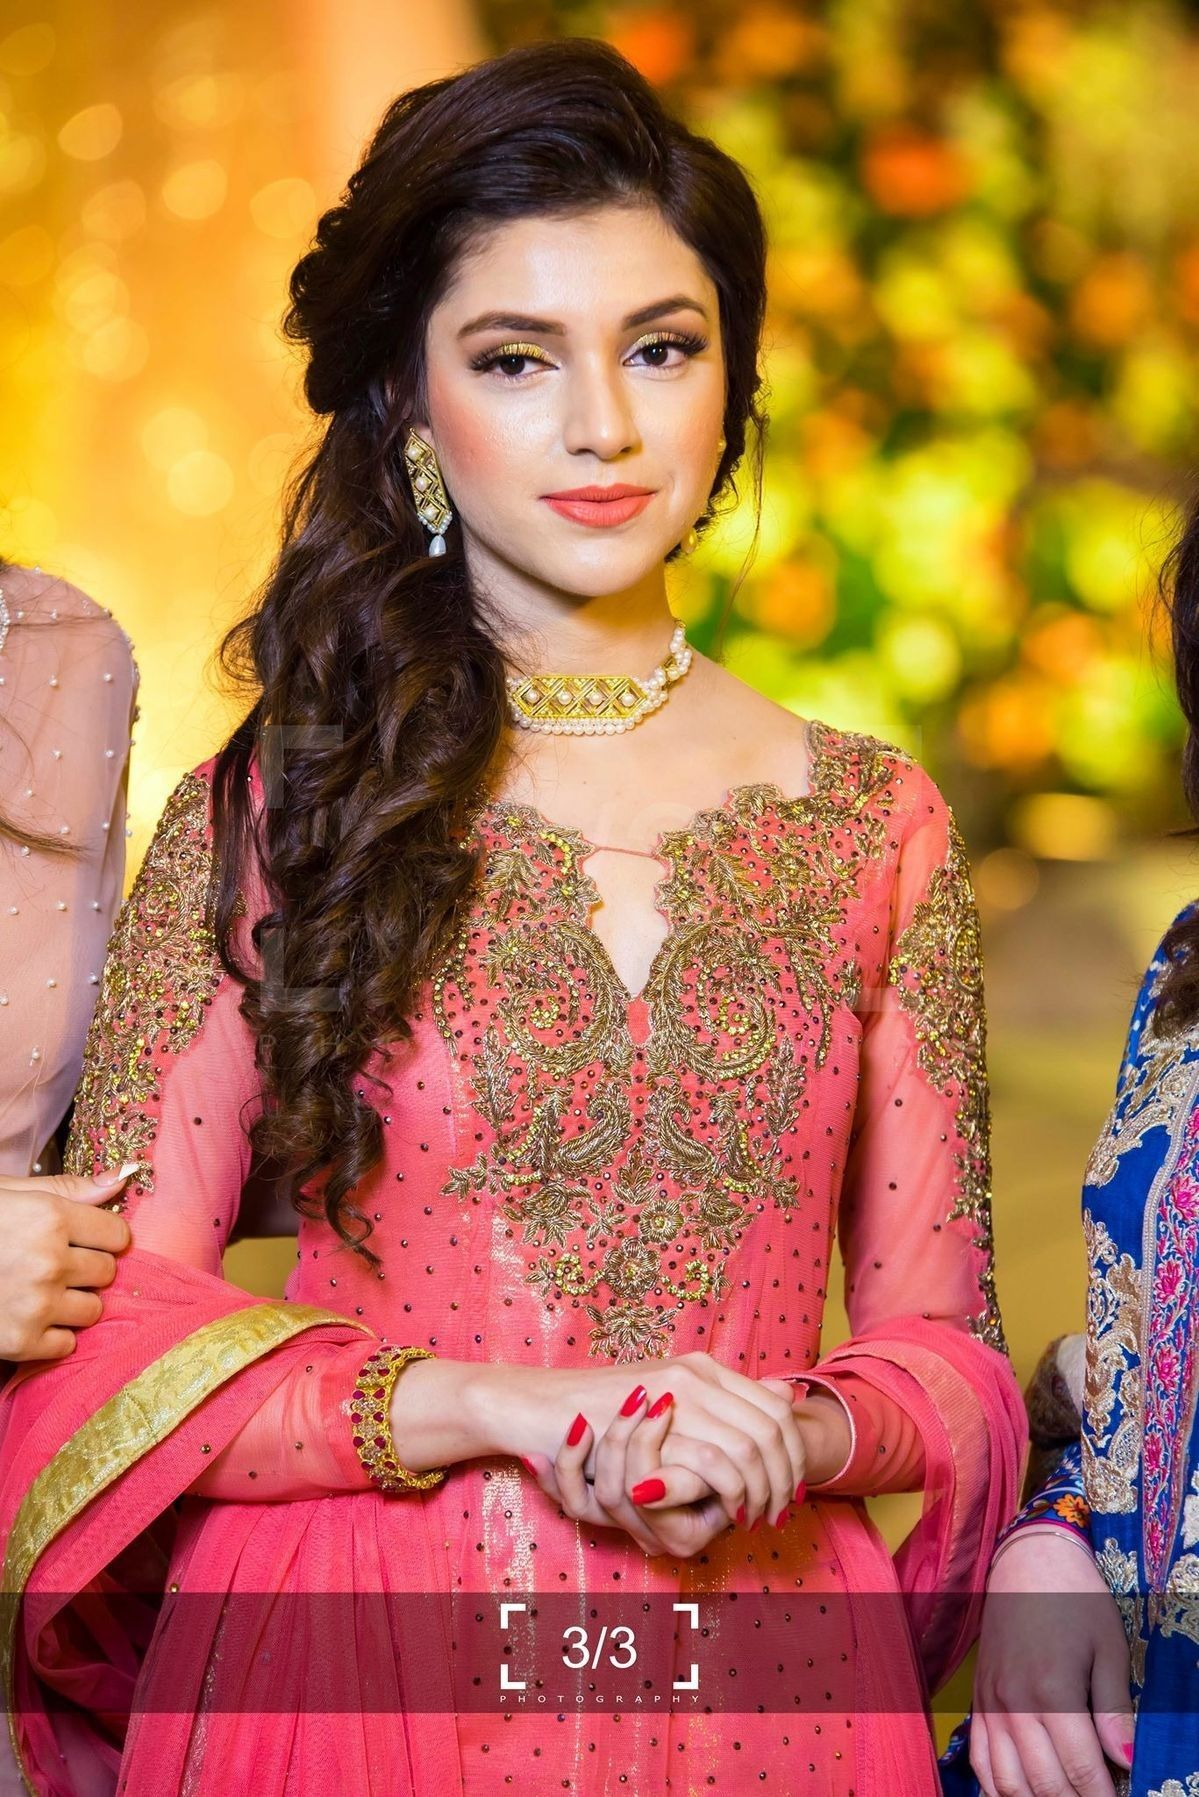 Pin By Faraz On Dresses Indian Wedding Hairstyles Saree Hairstyles Hair Styles